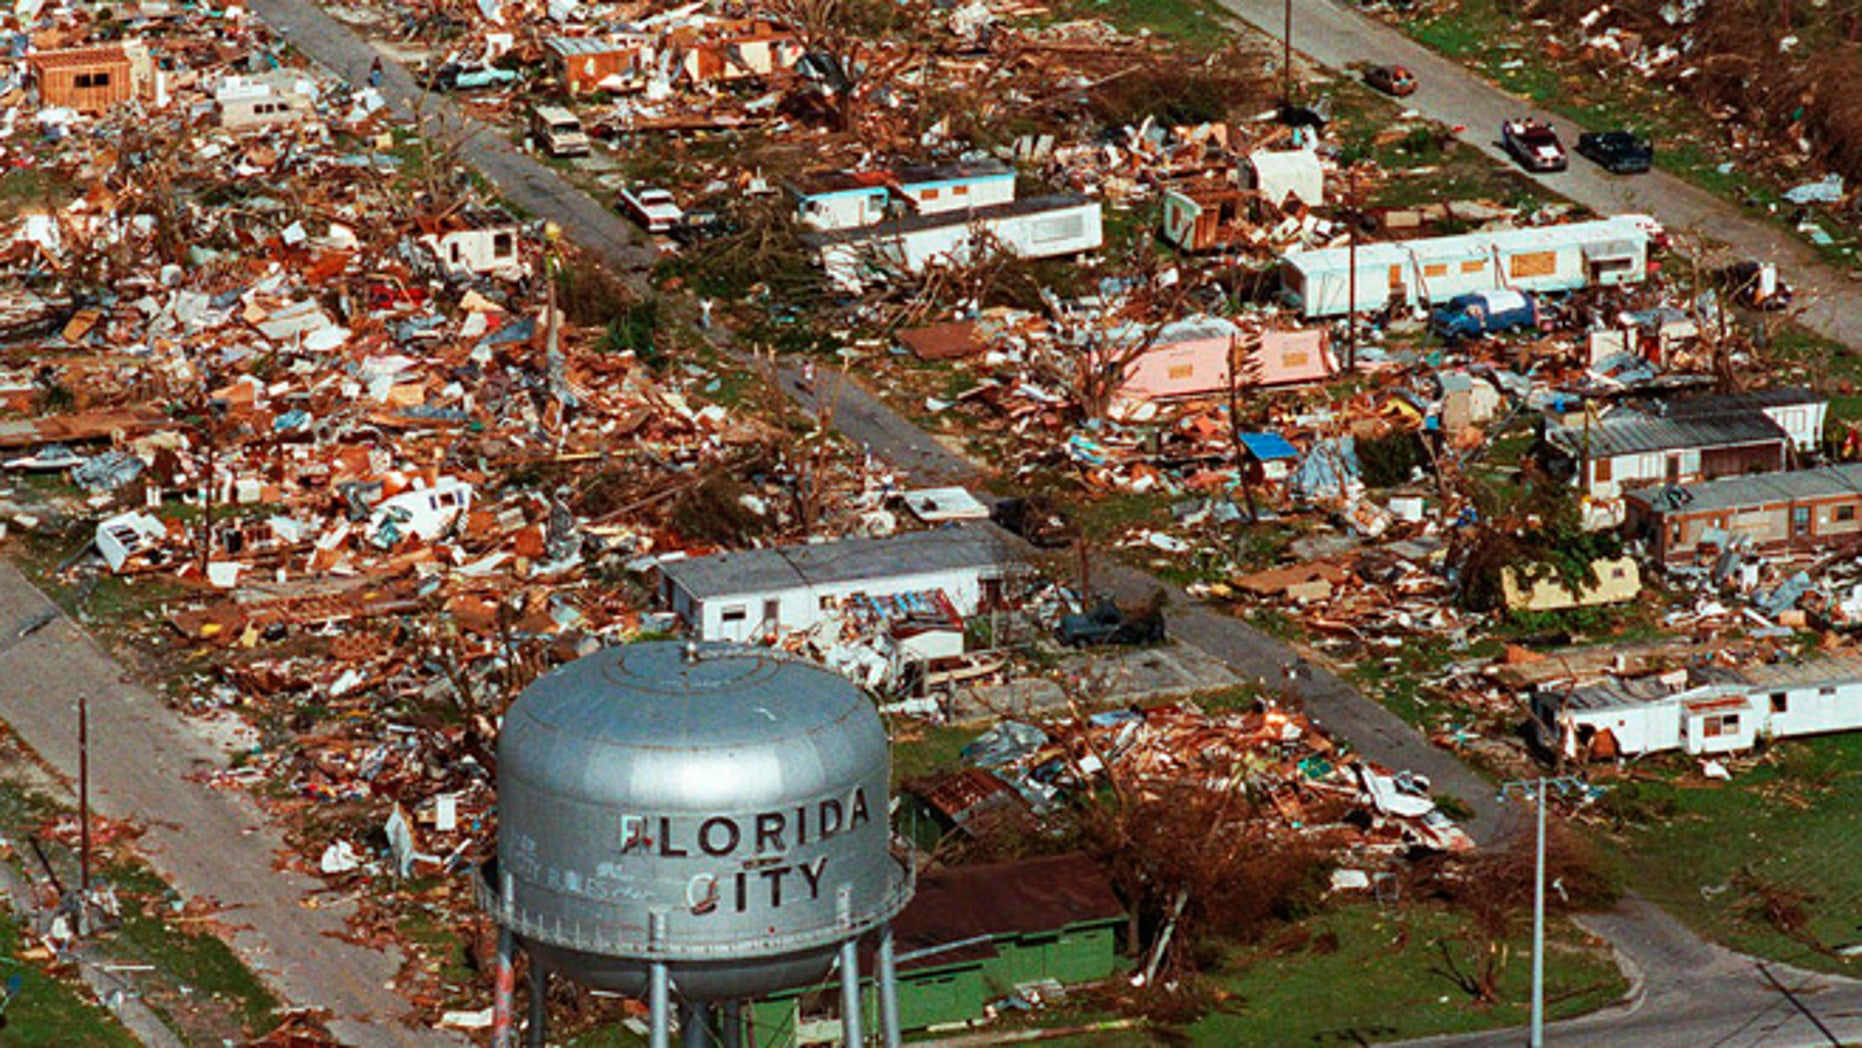 This Aug. 25, 1992 file photo shows the water tower, a landmark in Florida City, Fla. still standing over the ruins of the Florida coastal community that was hit by the force of Hurricane Andrew. Cities like Tampa, Houston, Jacksonville and Daytona Beach historically get hit with major hurricanes every 20 to 40 years, according to meteorologists. But those same places have now gone at least 70 years, sometimes more than a century, without getting smacked by those monster storms, according to data analyses by an MIT hurricane professor and The Associated Press.